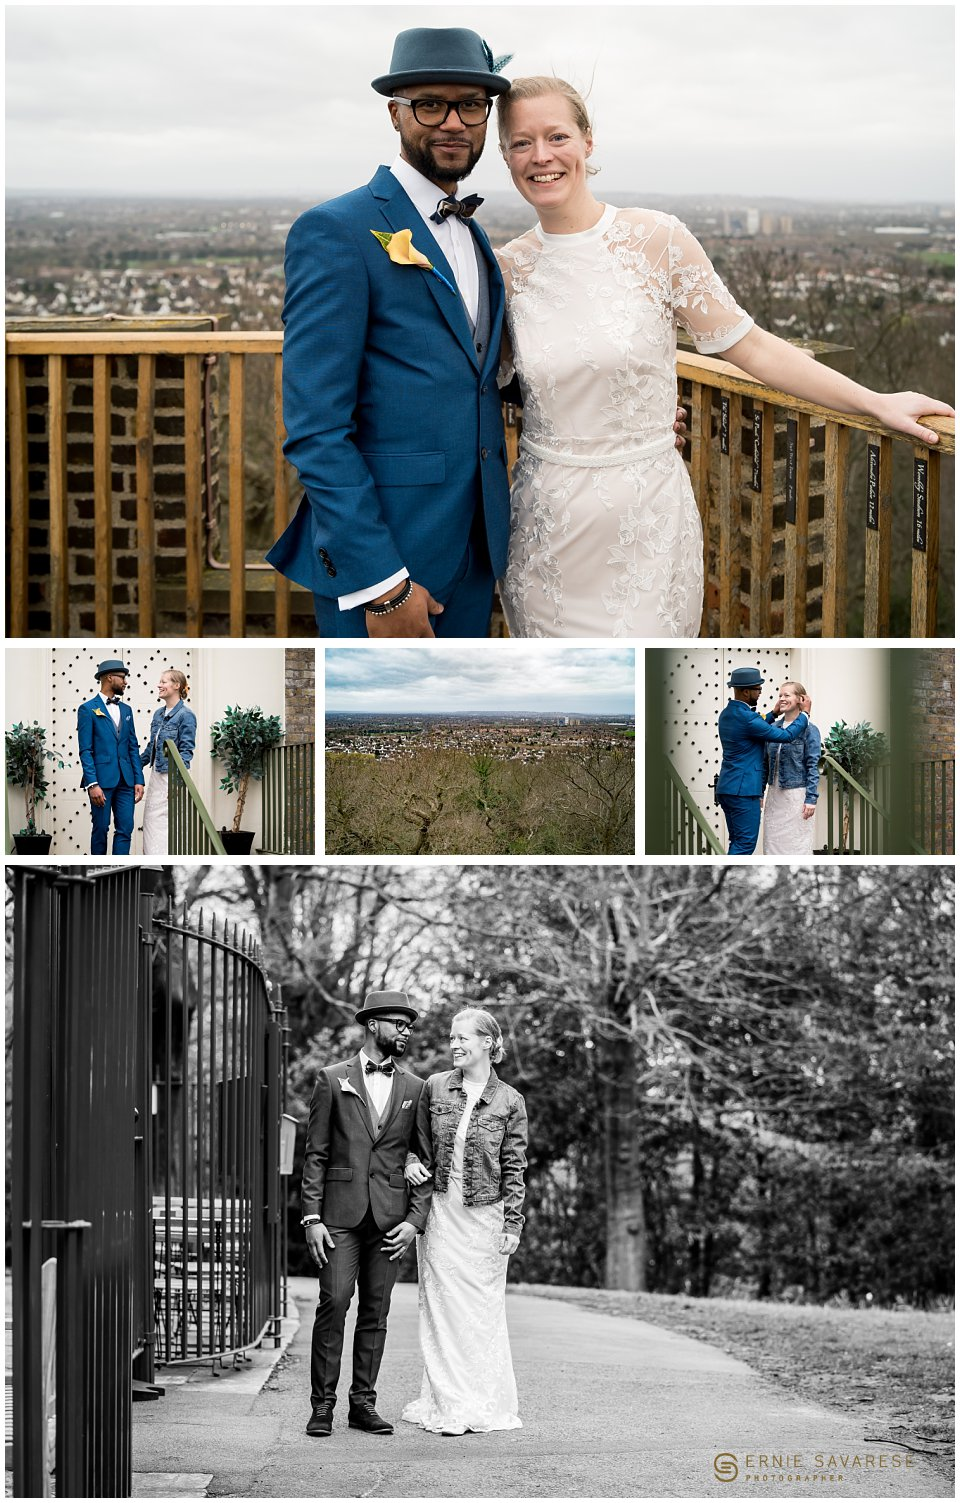 Wedding Photographer Greenwich Severndroog Castle 11